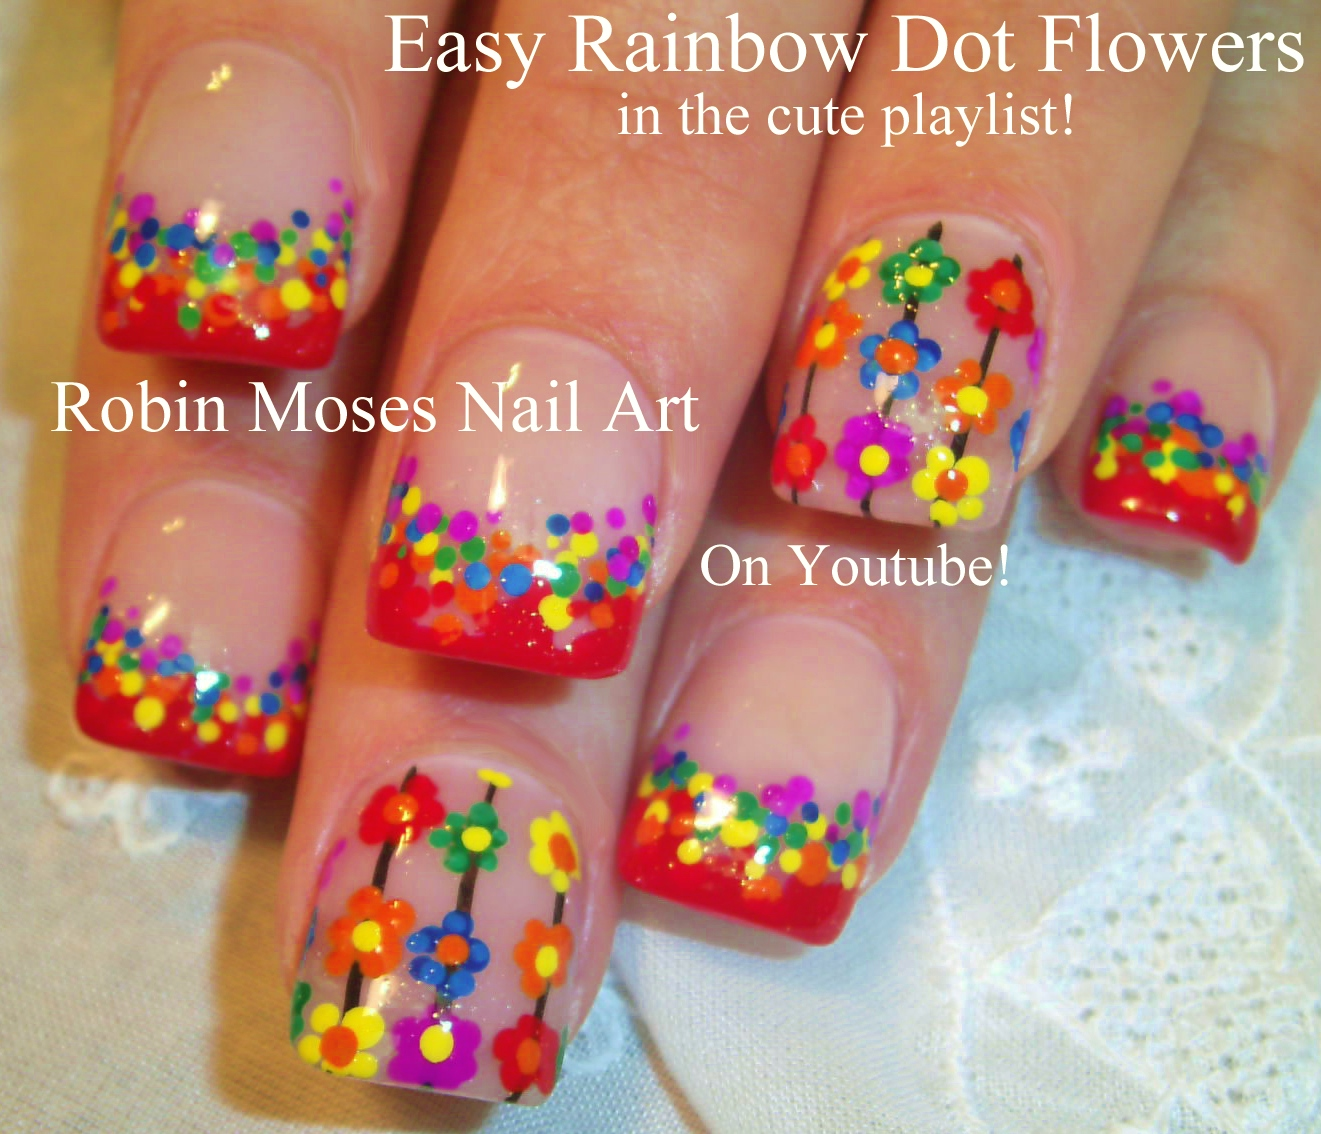 Robin Moses Nail Art Designs: Robin Moses Nail Art: Rainbow Animal Paw Prints! Super